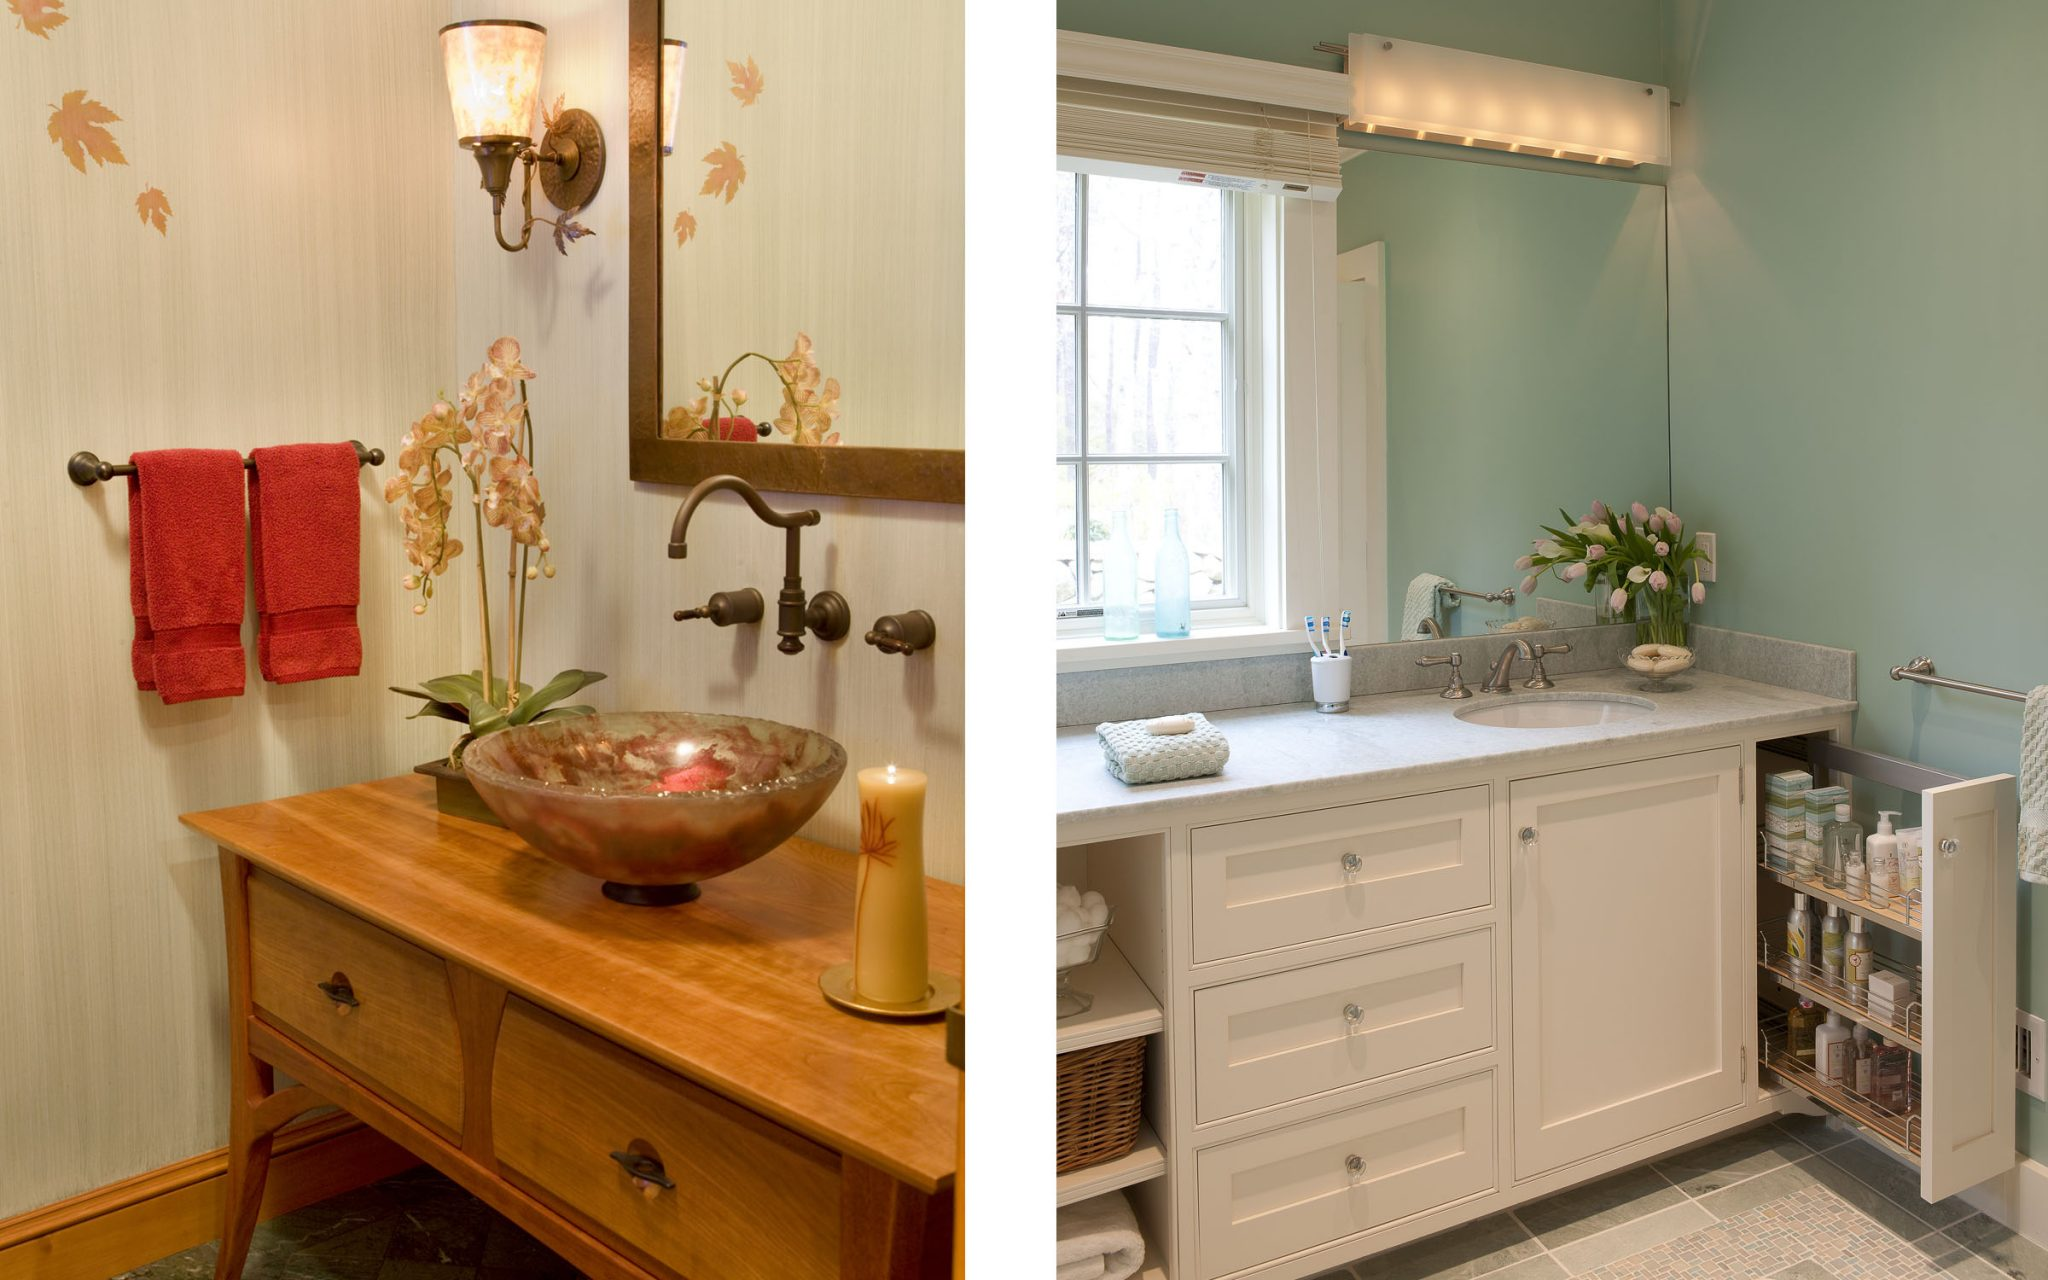 Two bathrooms designed by Boston-area interior design firm Elizabeth Swartz Interiors that are featured in this HGTV article about bathroom storage.